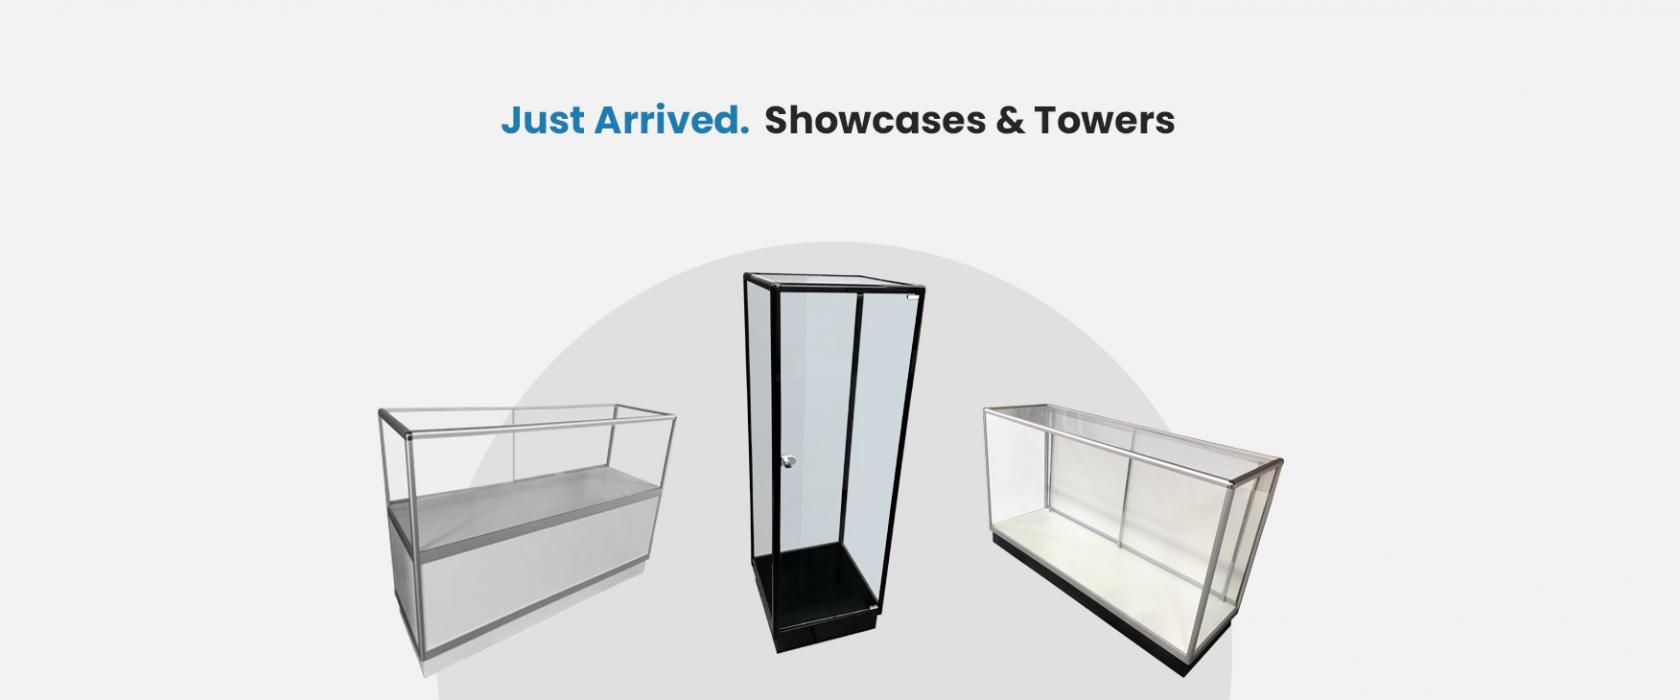 Just Arrived Showcases